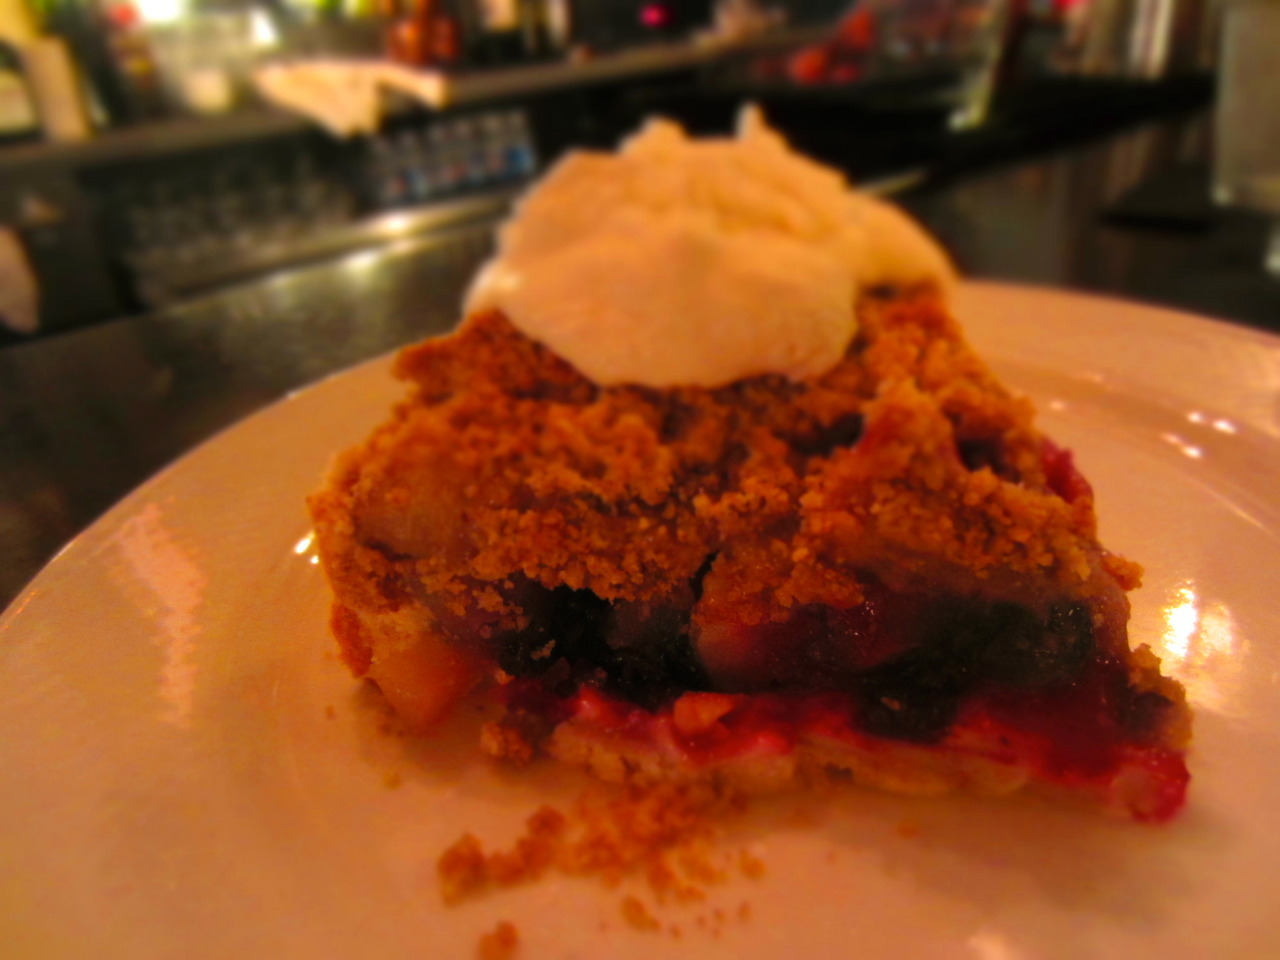 midnight pie at The Roosevelt(vegan blueberry pear)counting the minutes until this bakery opensand i can have midnight pieevery night!